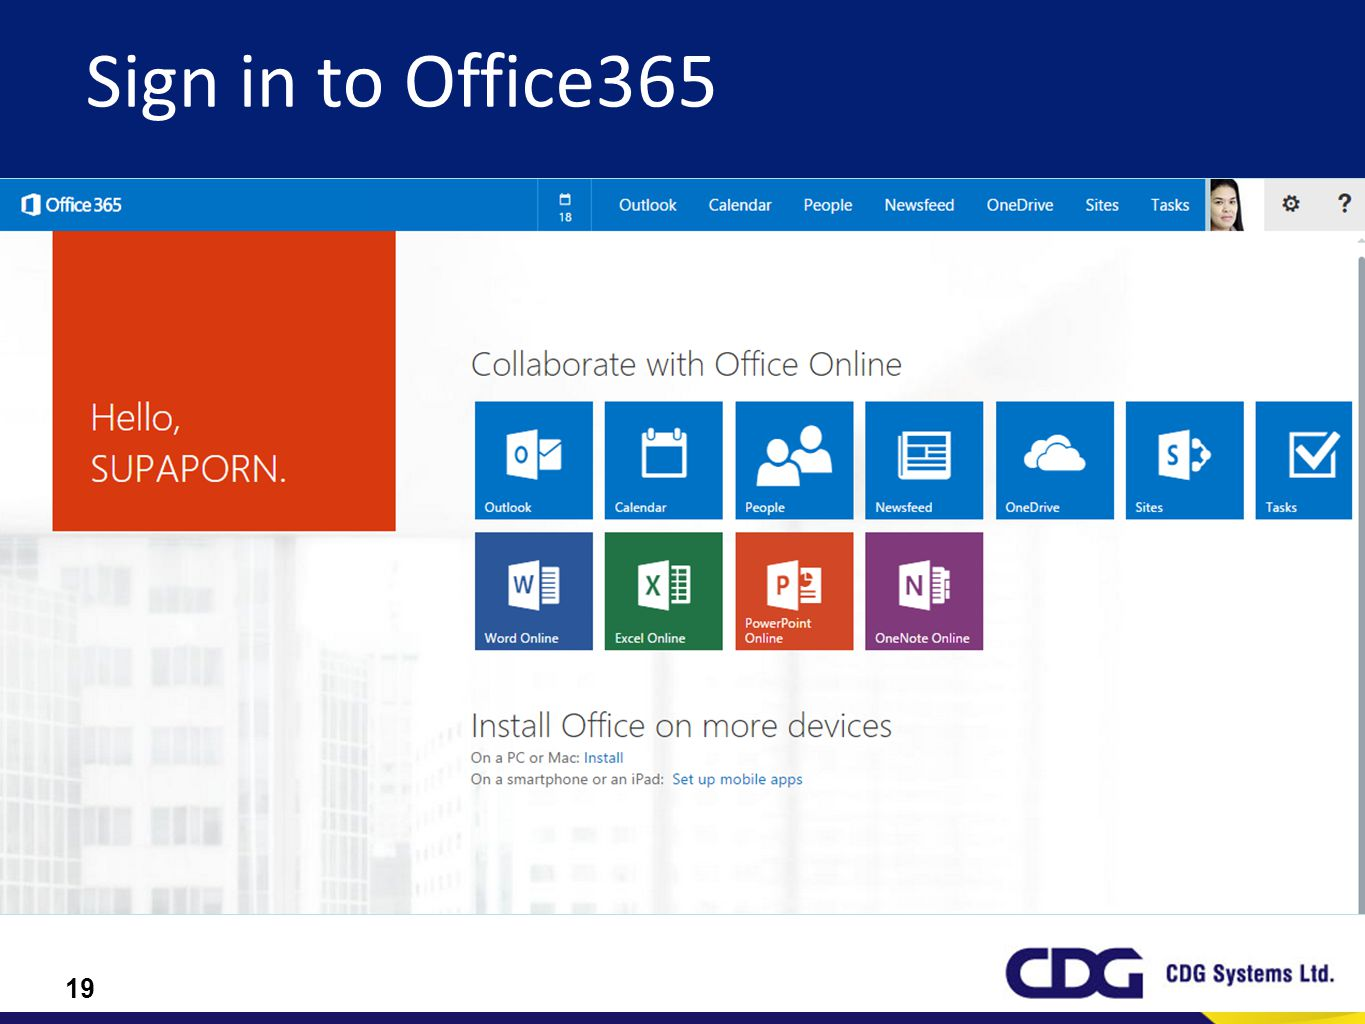 Sign in to Office365